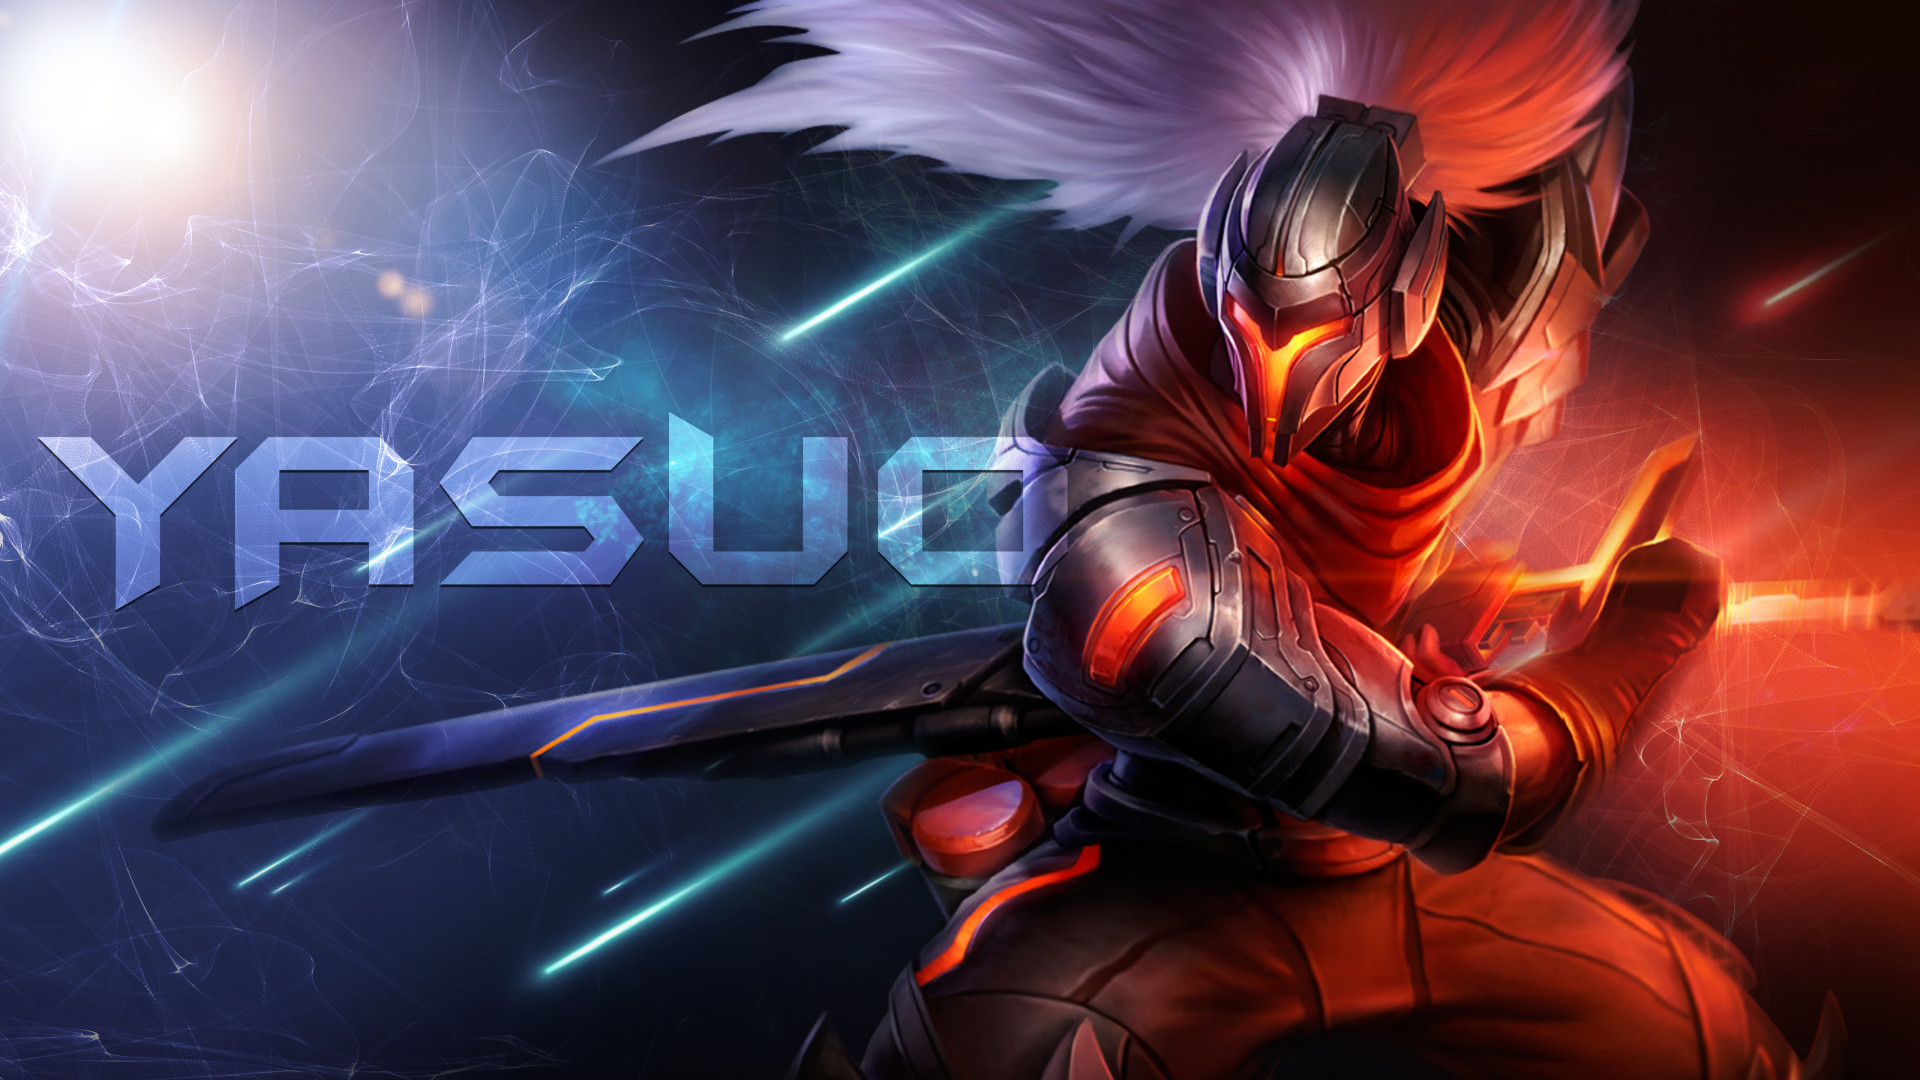 Free Download Project Yasuo Wallpaper Hd 82 Images